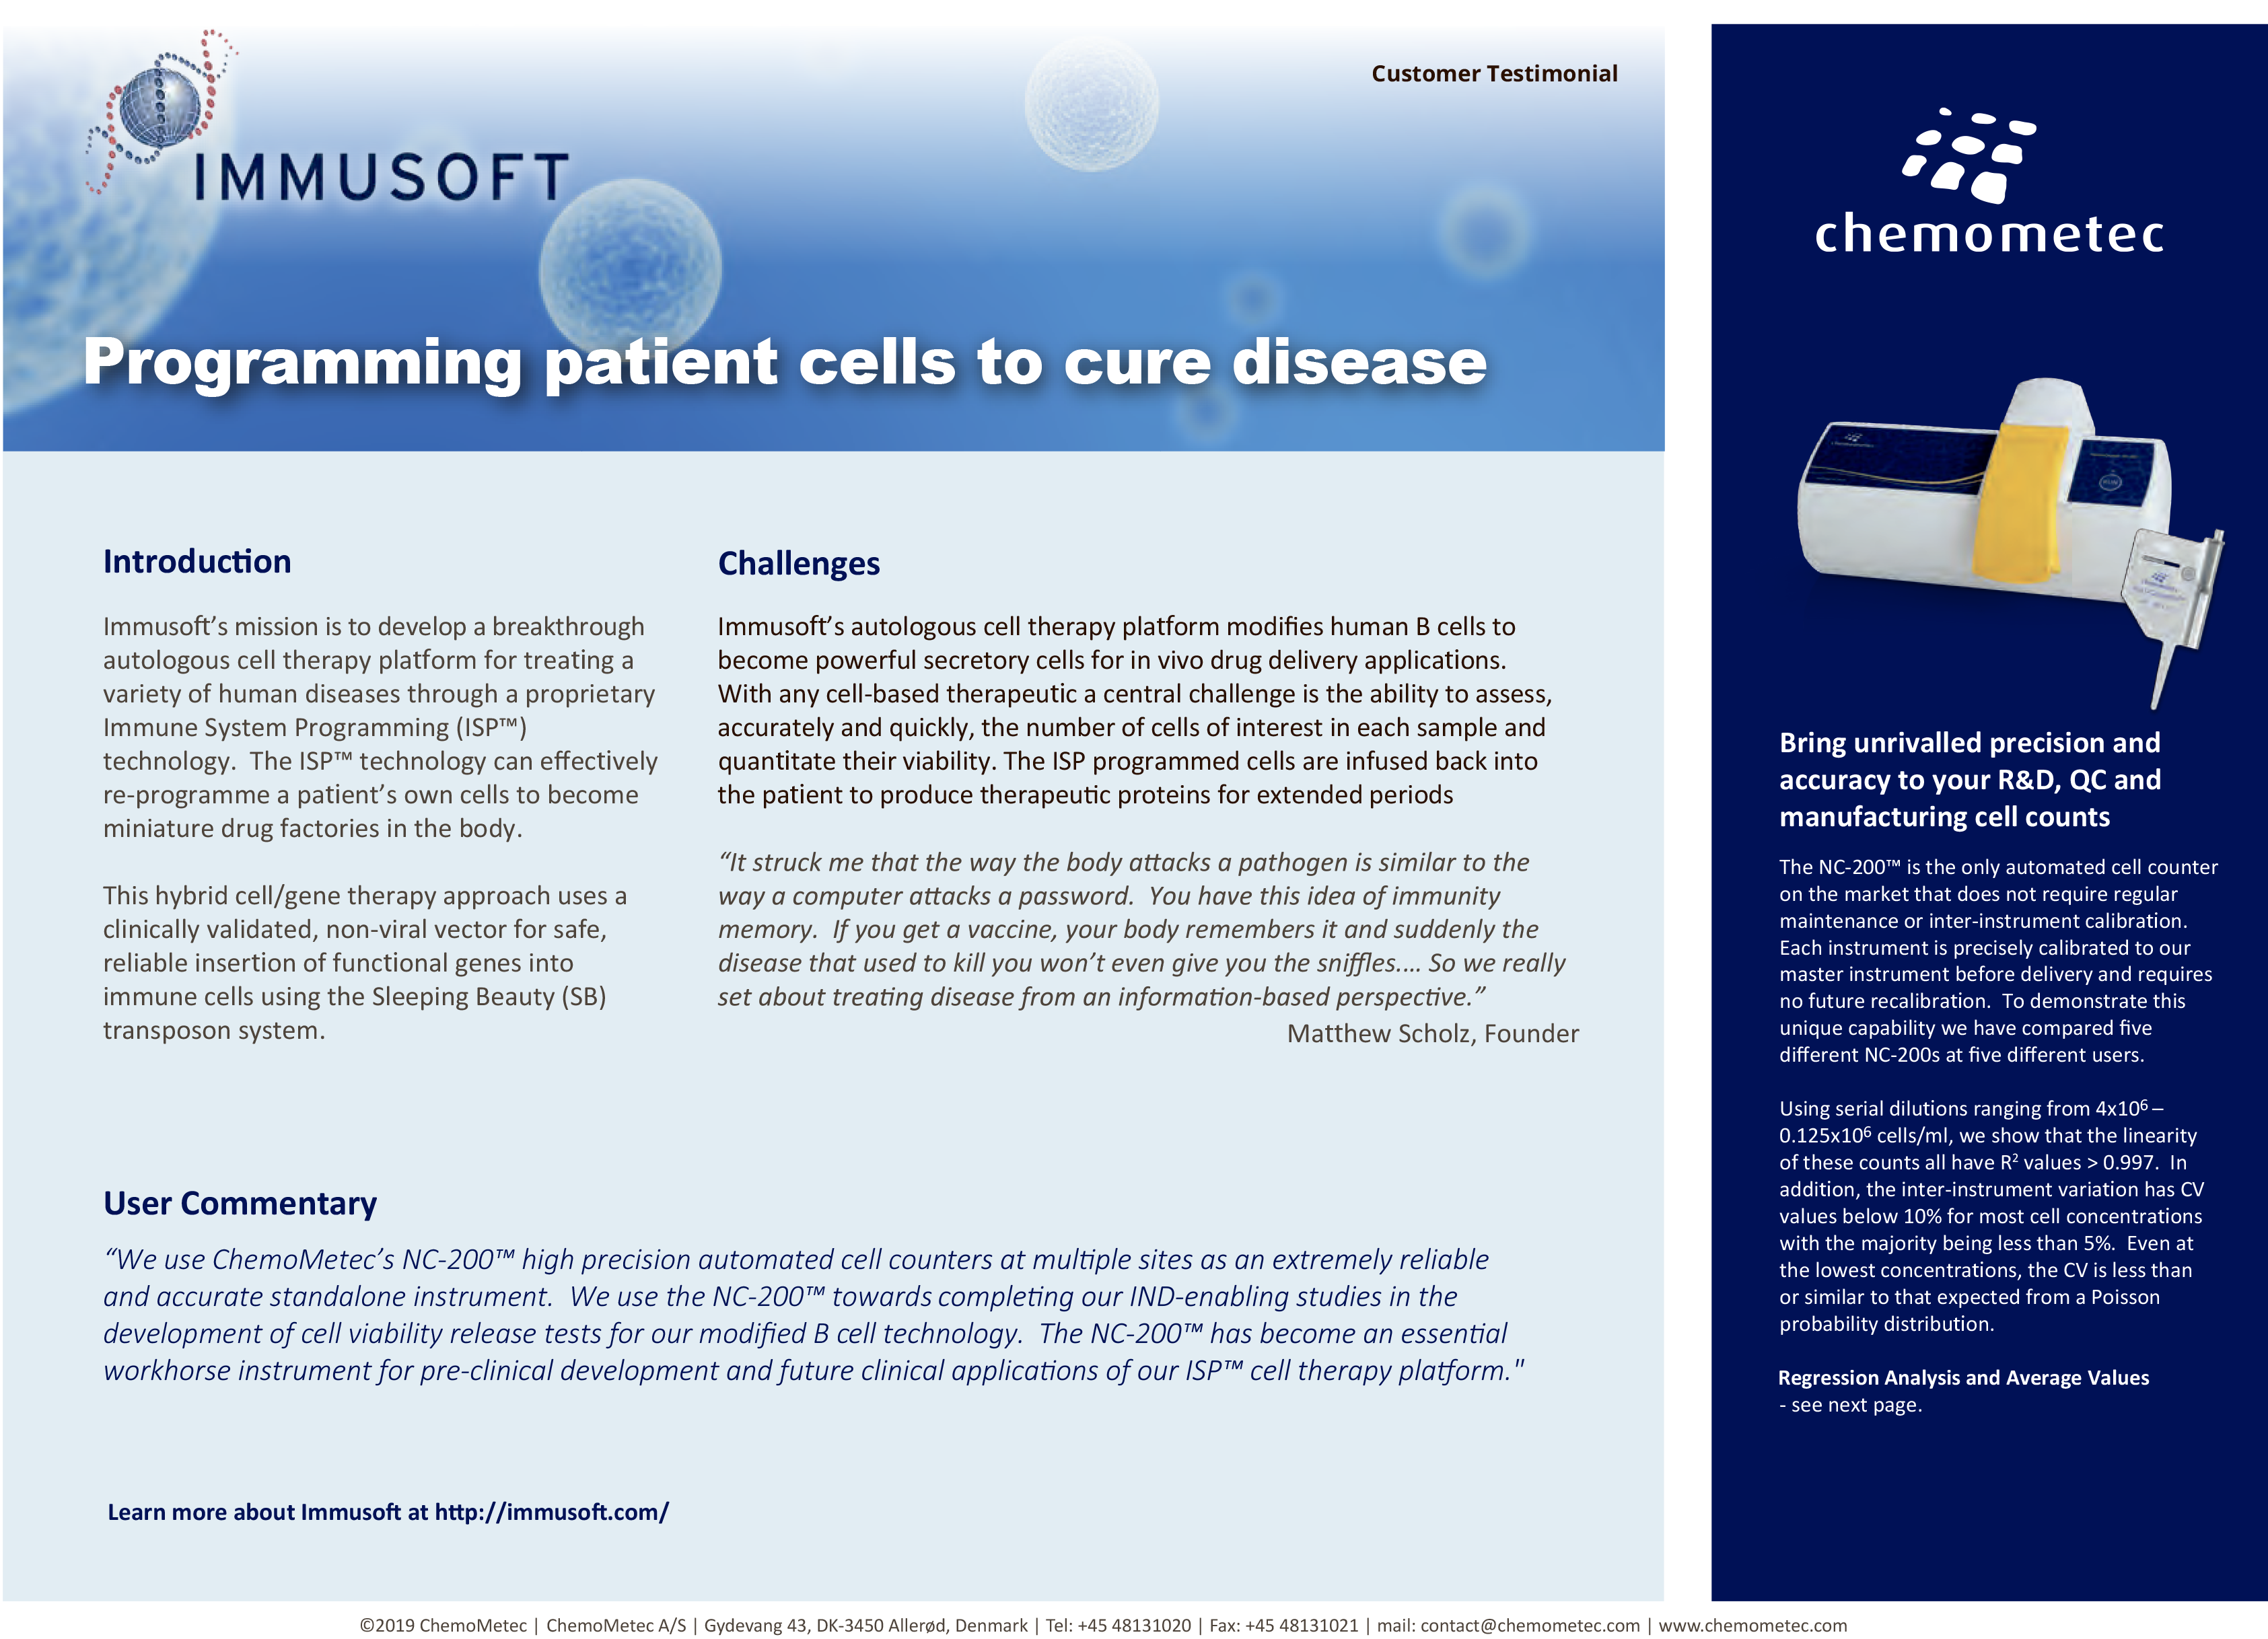 Testimonial of the NucleoCounter® NC-200™ automated cell counter at Immusoft